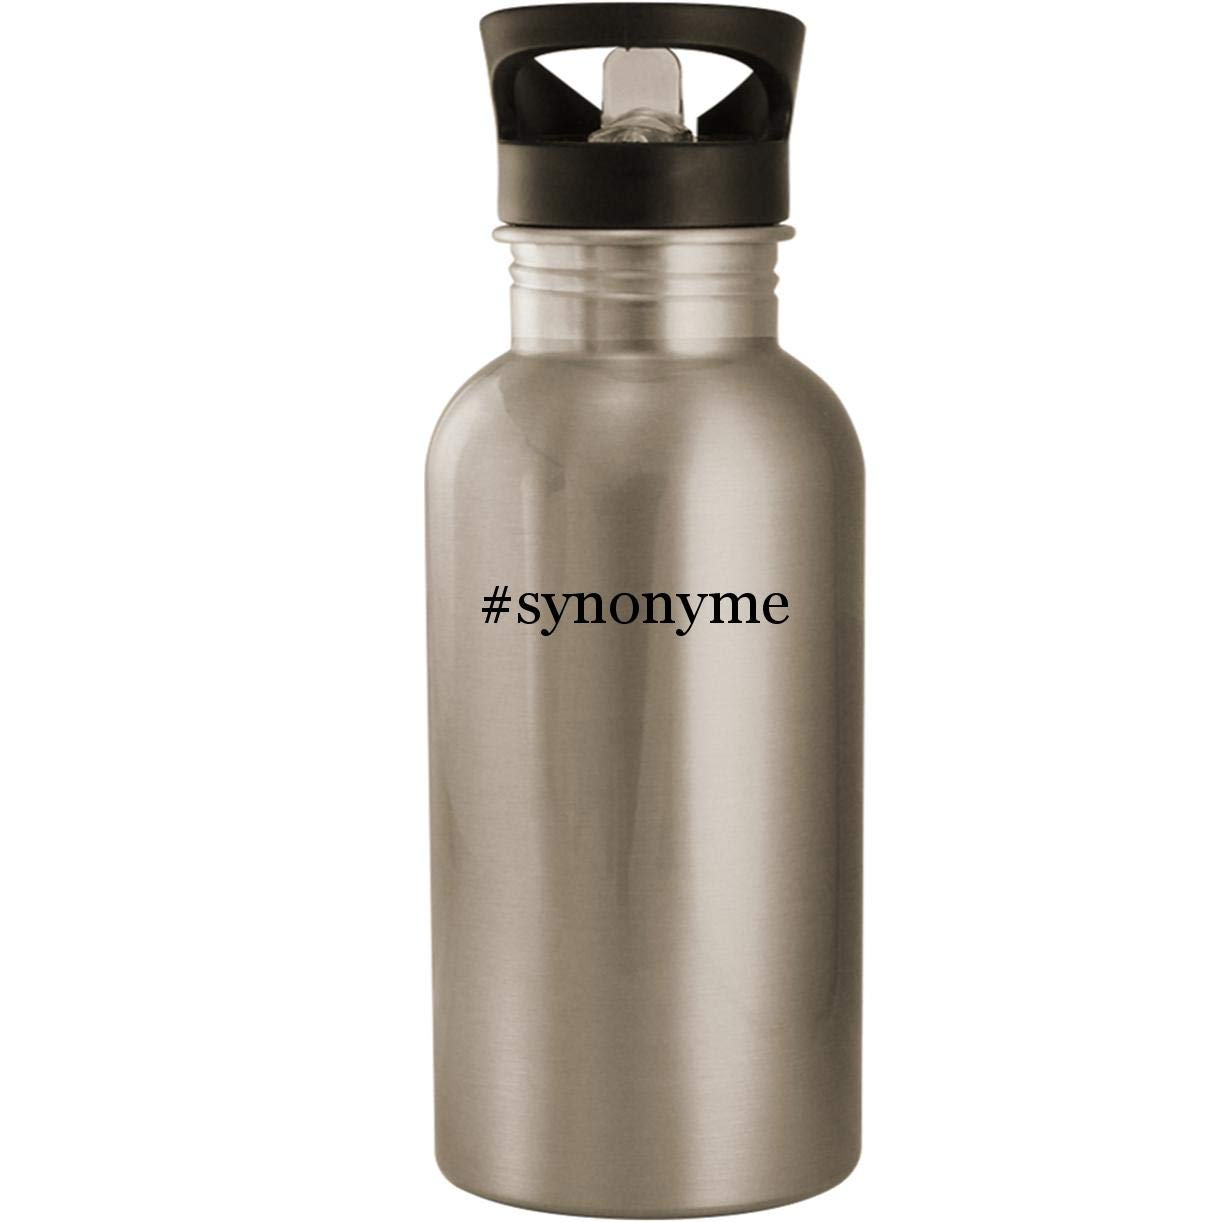 #synonyme - Stainless Steel Hashtag 20oz Road Ready Water Bottle, Silver